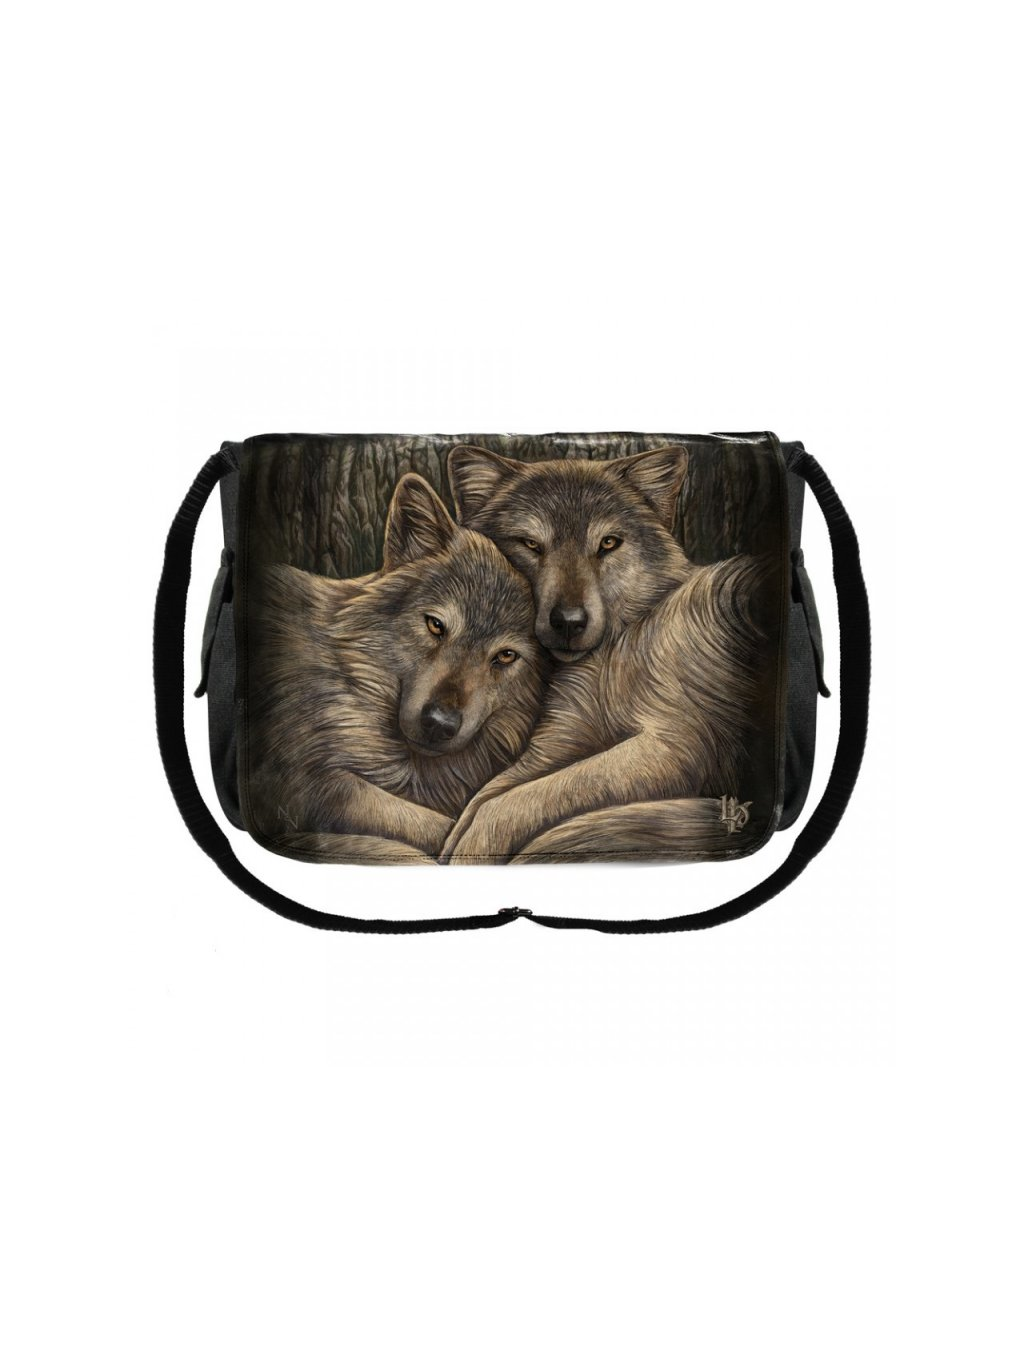 messenger bag loyal companions 40cm